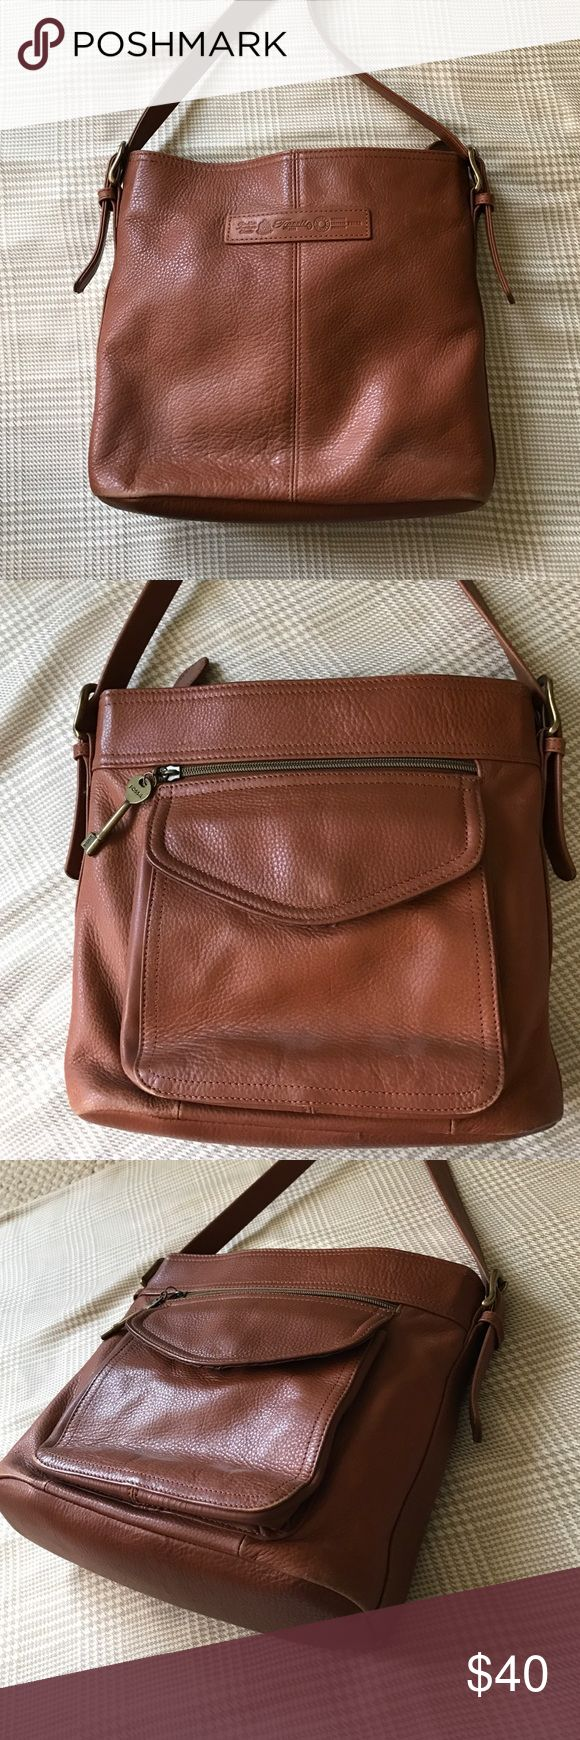 NWOT - Fossil Brown Leather Satchel NWOT - Fossil Brown Leather Satchel. Lots of compartment inside. Fossil Bags Satchels